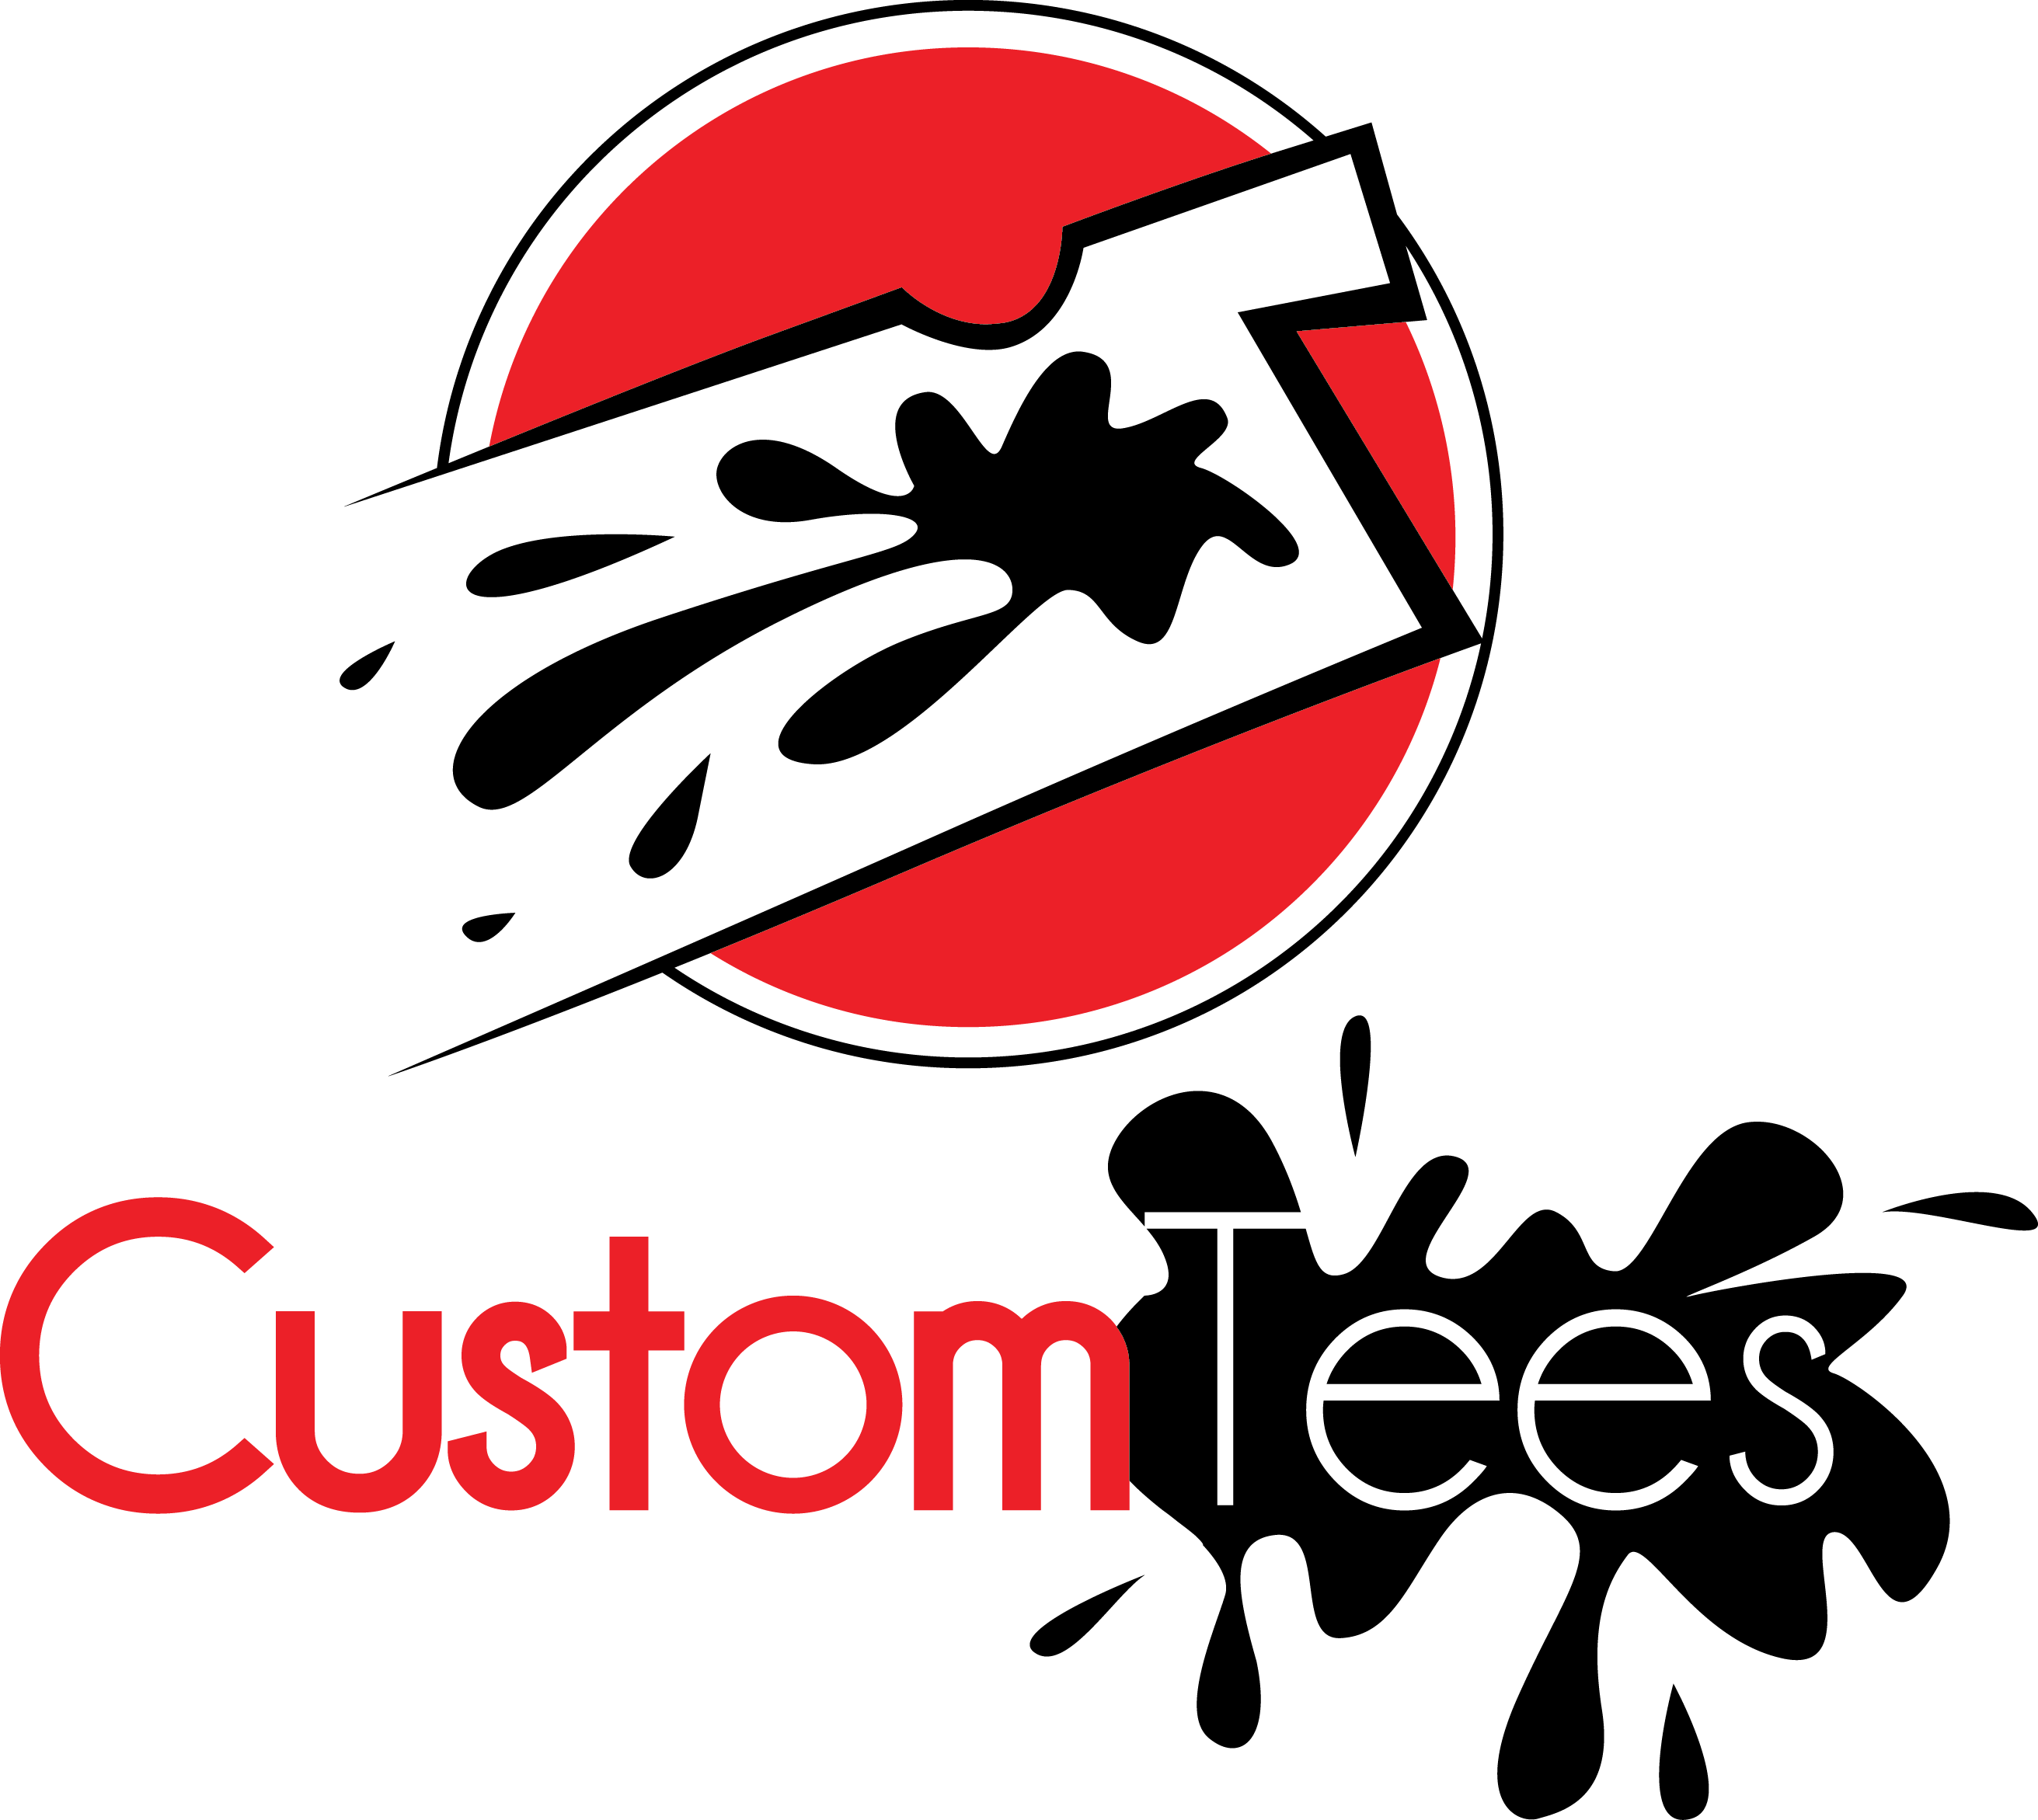 3c4b80219 Custom Tees, Atlanta GA - Custom T-Shirt Printing, Same Day Screen ...